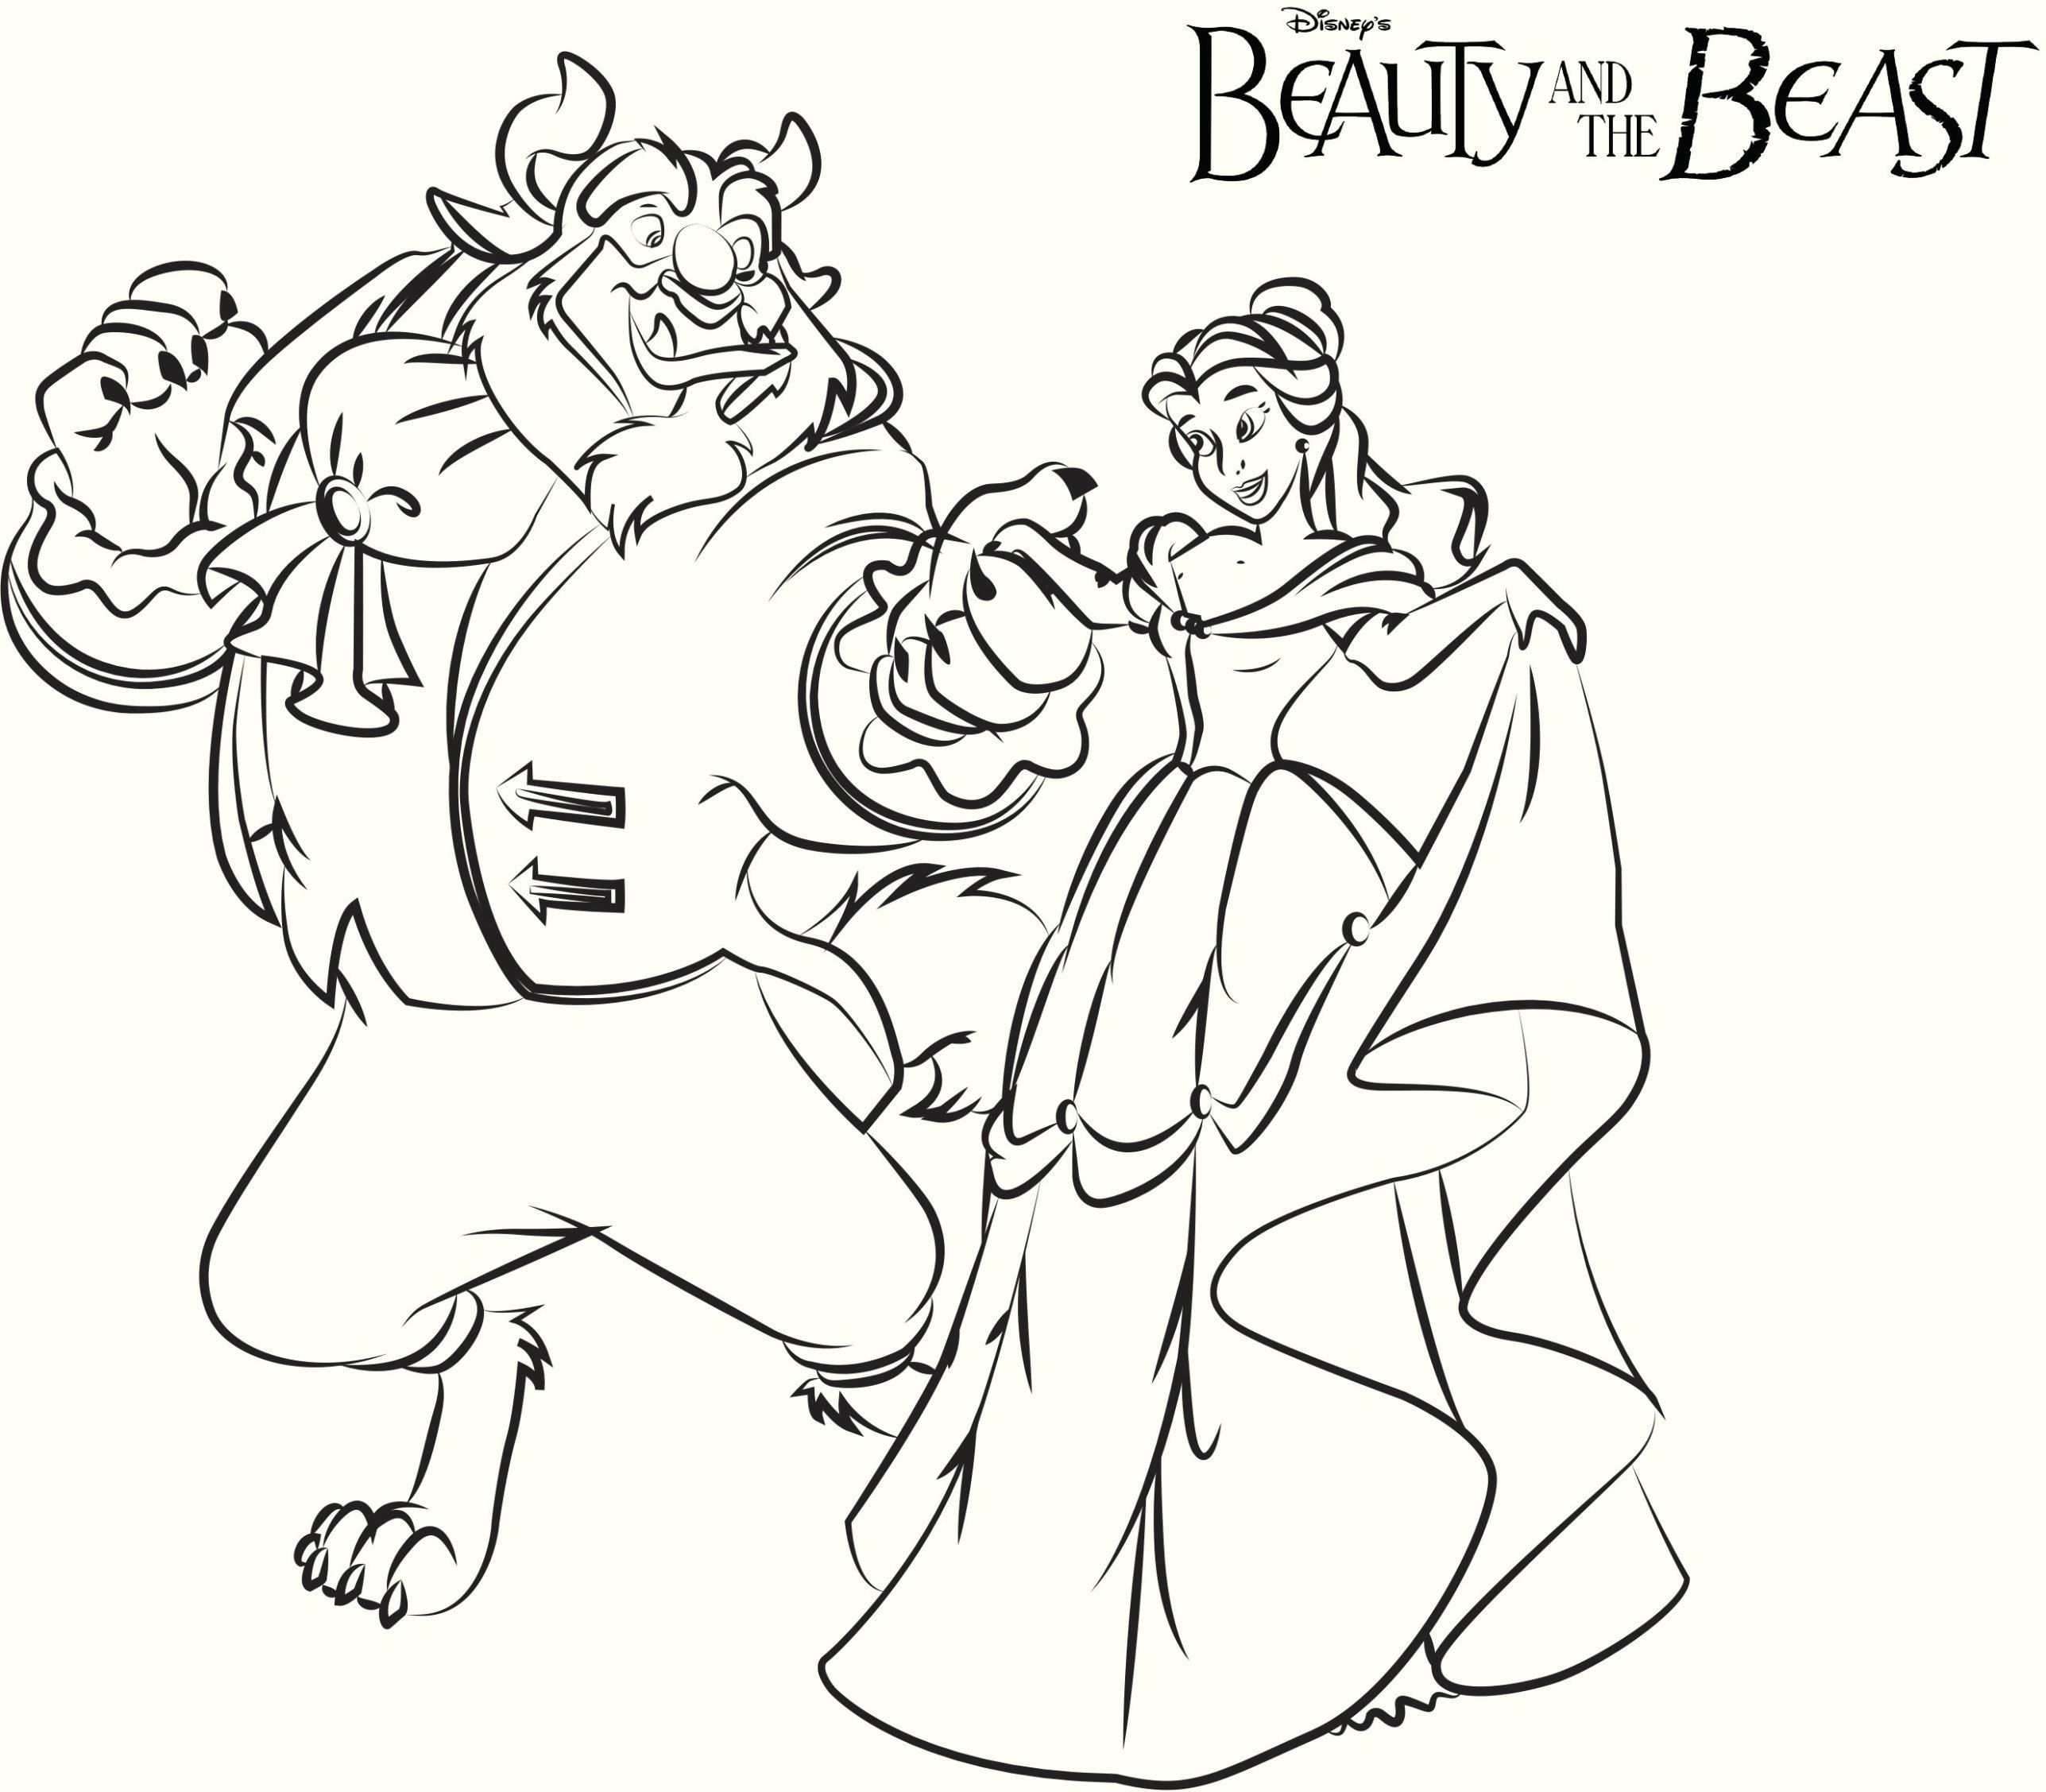 Printable Beauty and The Beast Coloring Pages | Education Coloring ...